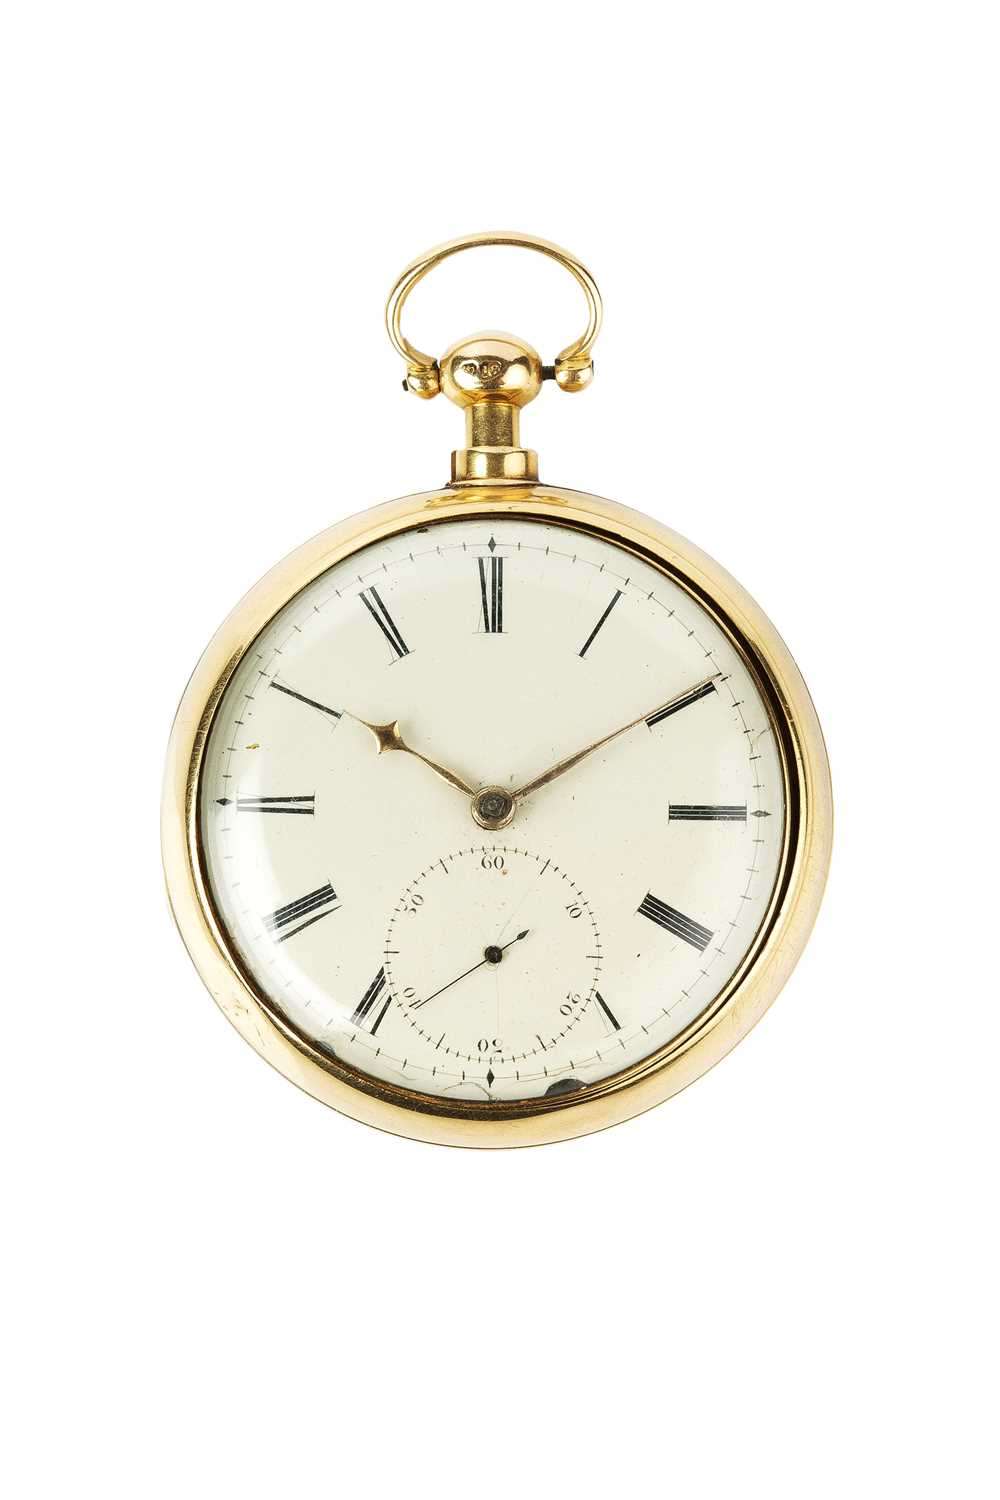 A George III 18ct gold pair case pocket watch, the circular white enamel dial with Roman numerals,